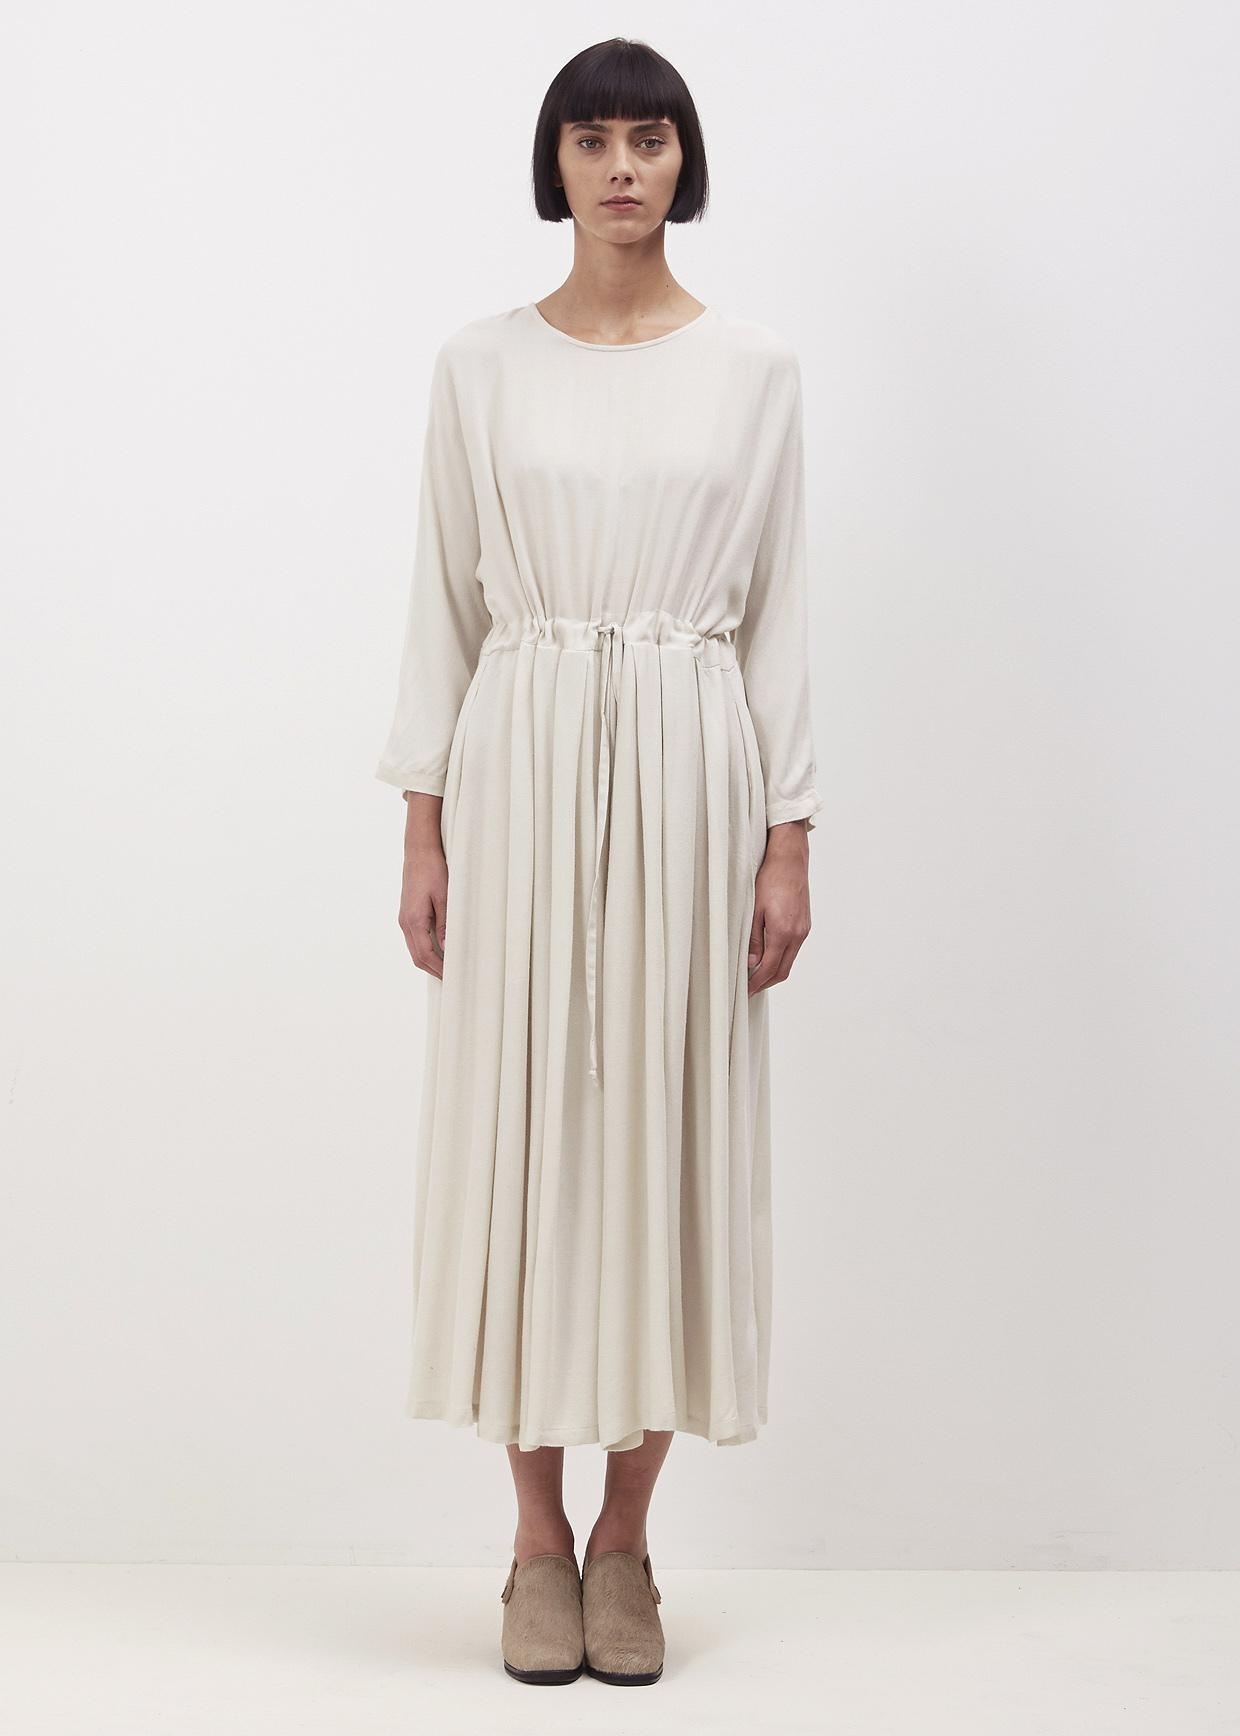 Find cream from the Womens department at Debenhams. Shop a wide range of Dresses products and more at our online shop today. Menu Natural lace top pleated skirt dress Save. Was £ Now £ Sistaglam Nude 'Loretta' embellished maxi dress Save. Was £ .